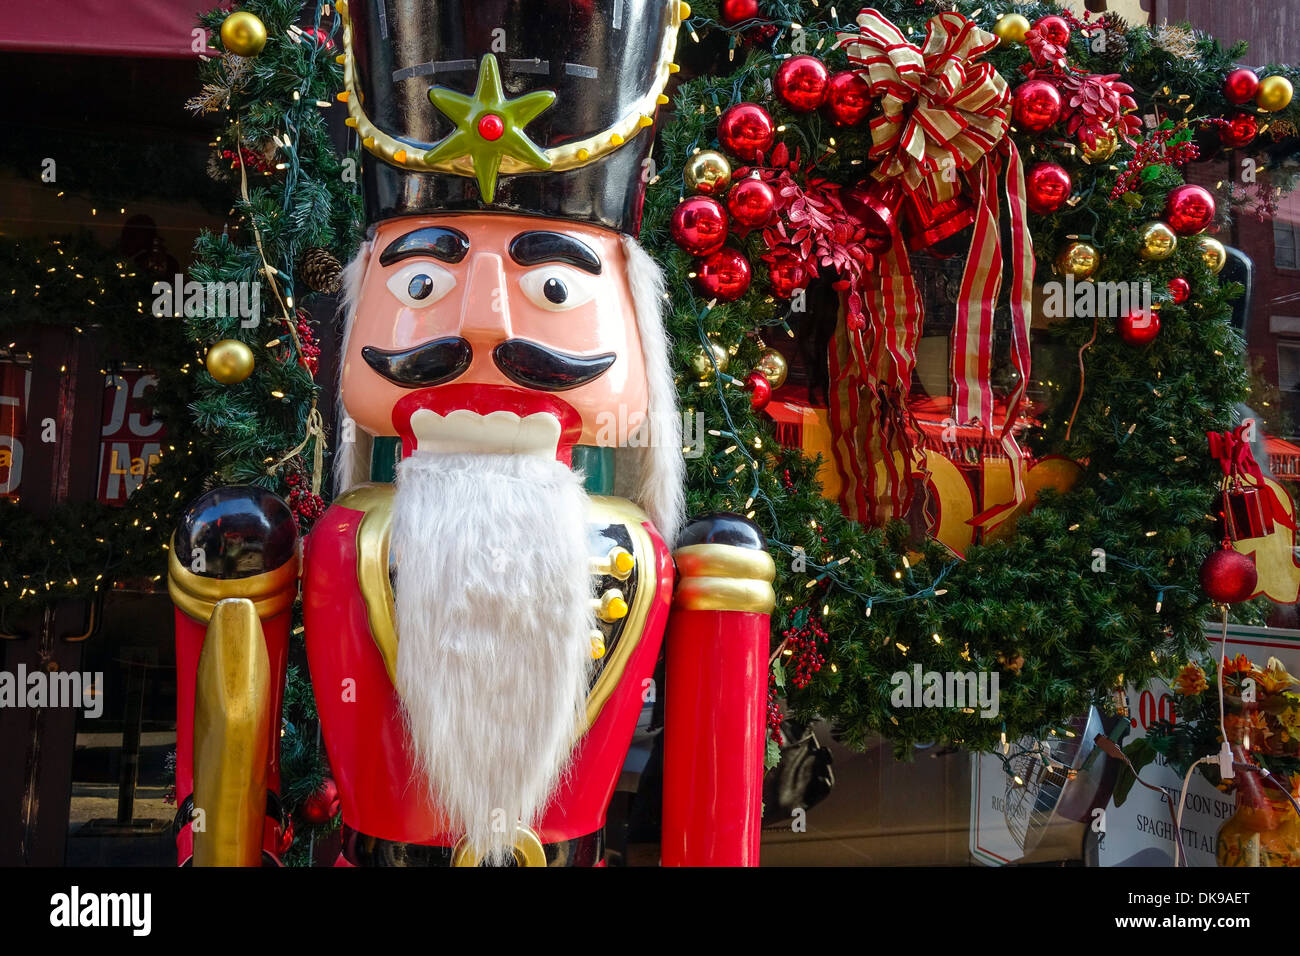 christmas toy soldier and fur tree outside nyc restaurant stock image - Outdoor Toy Soldier Christmas Decorations